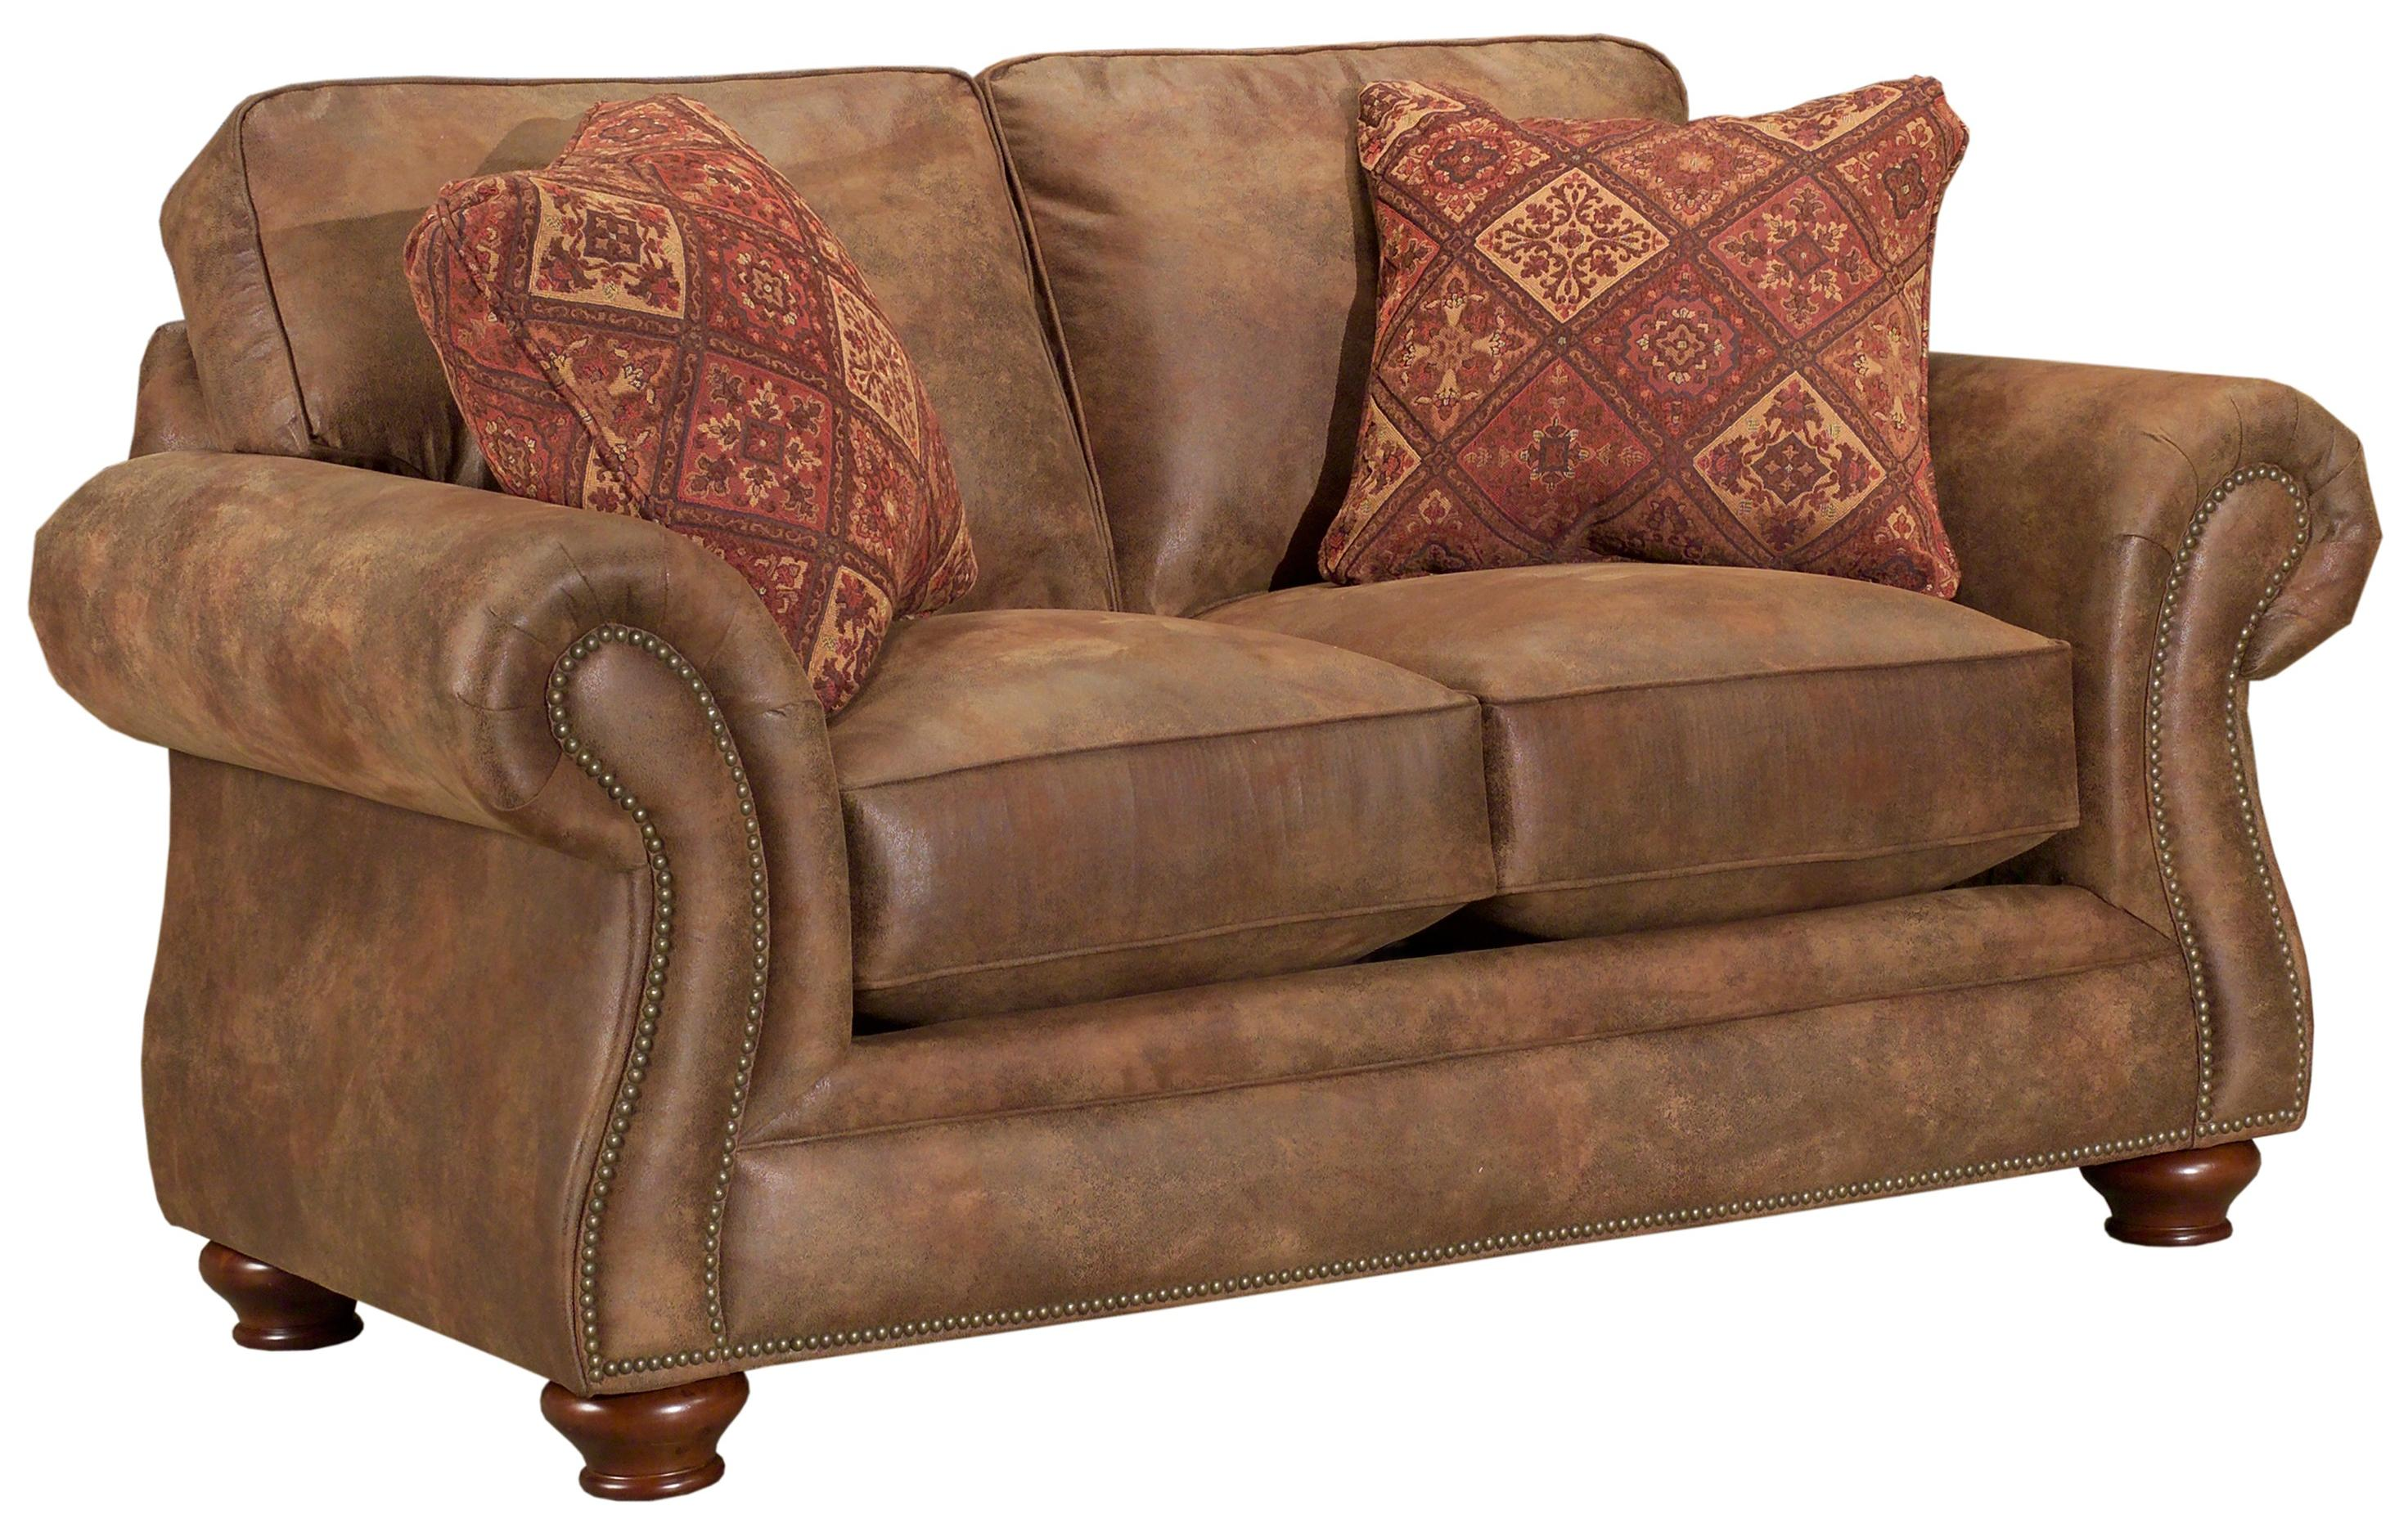 Broyhill Furniture Laramie Loveseat - Item Number: 5081-1